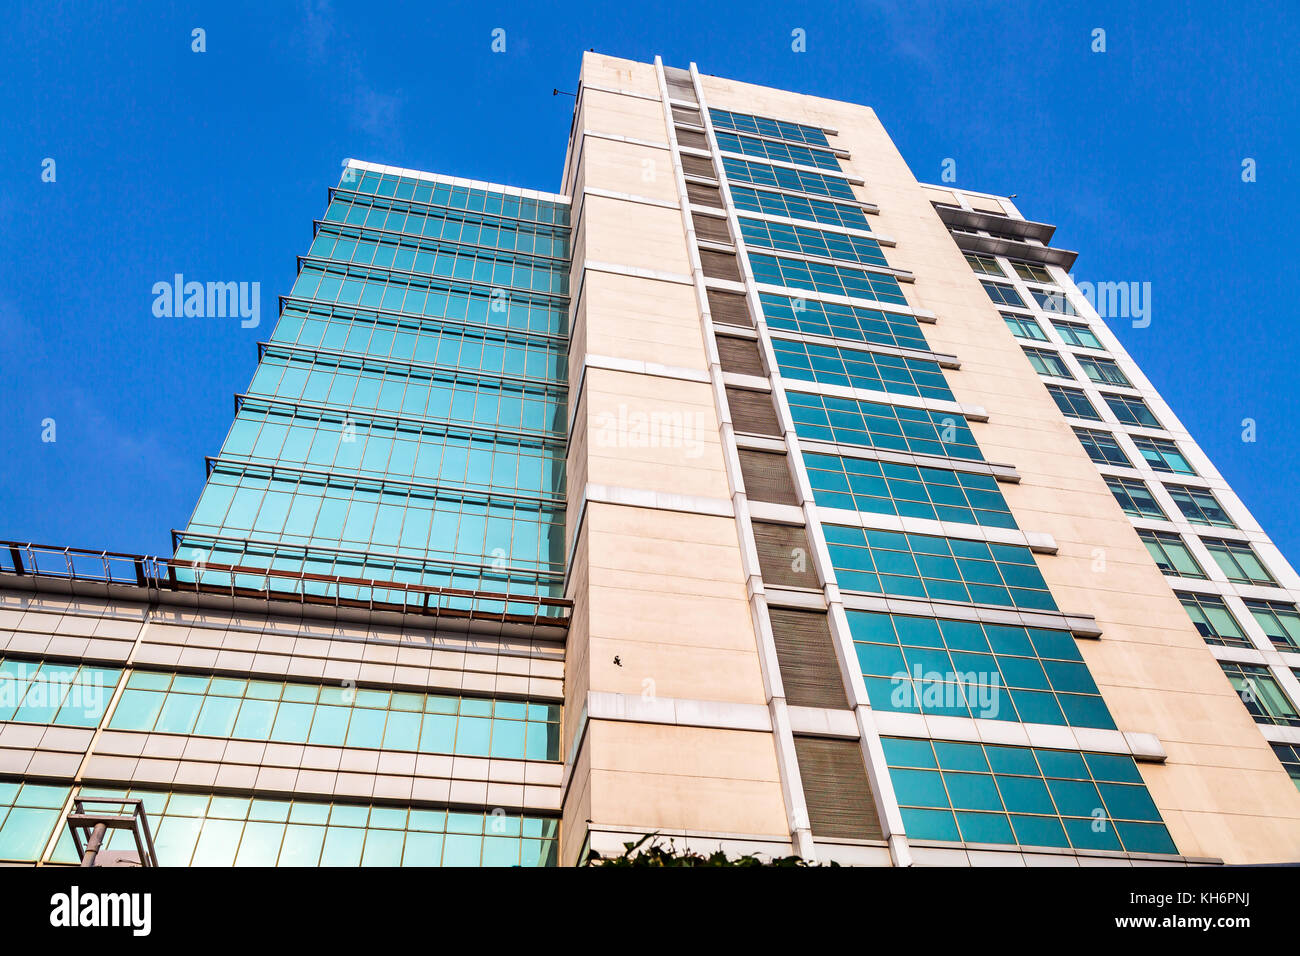 Commercial Office Building Exterior With Modern Architectural Design At  Rajarhat Area Of Kolkata India